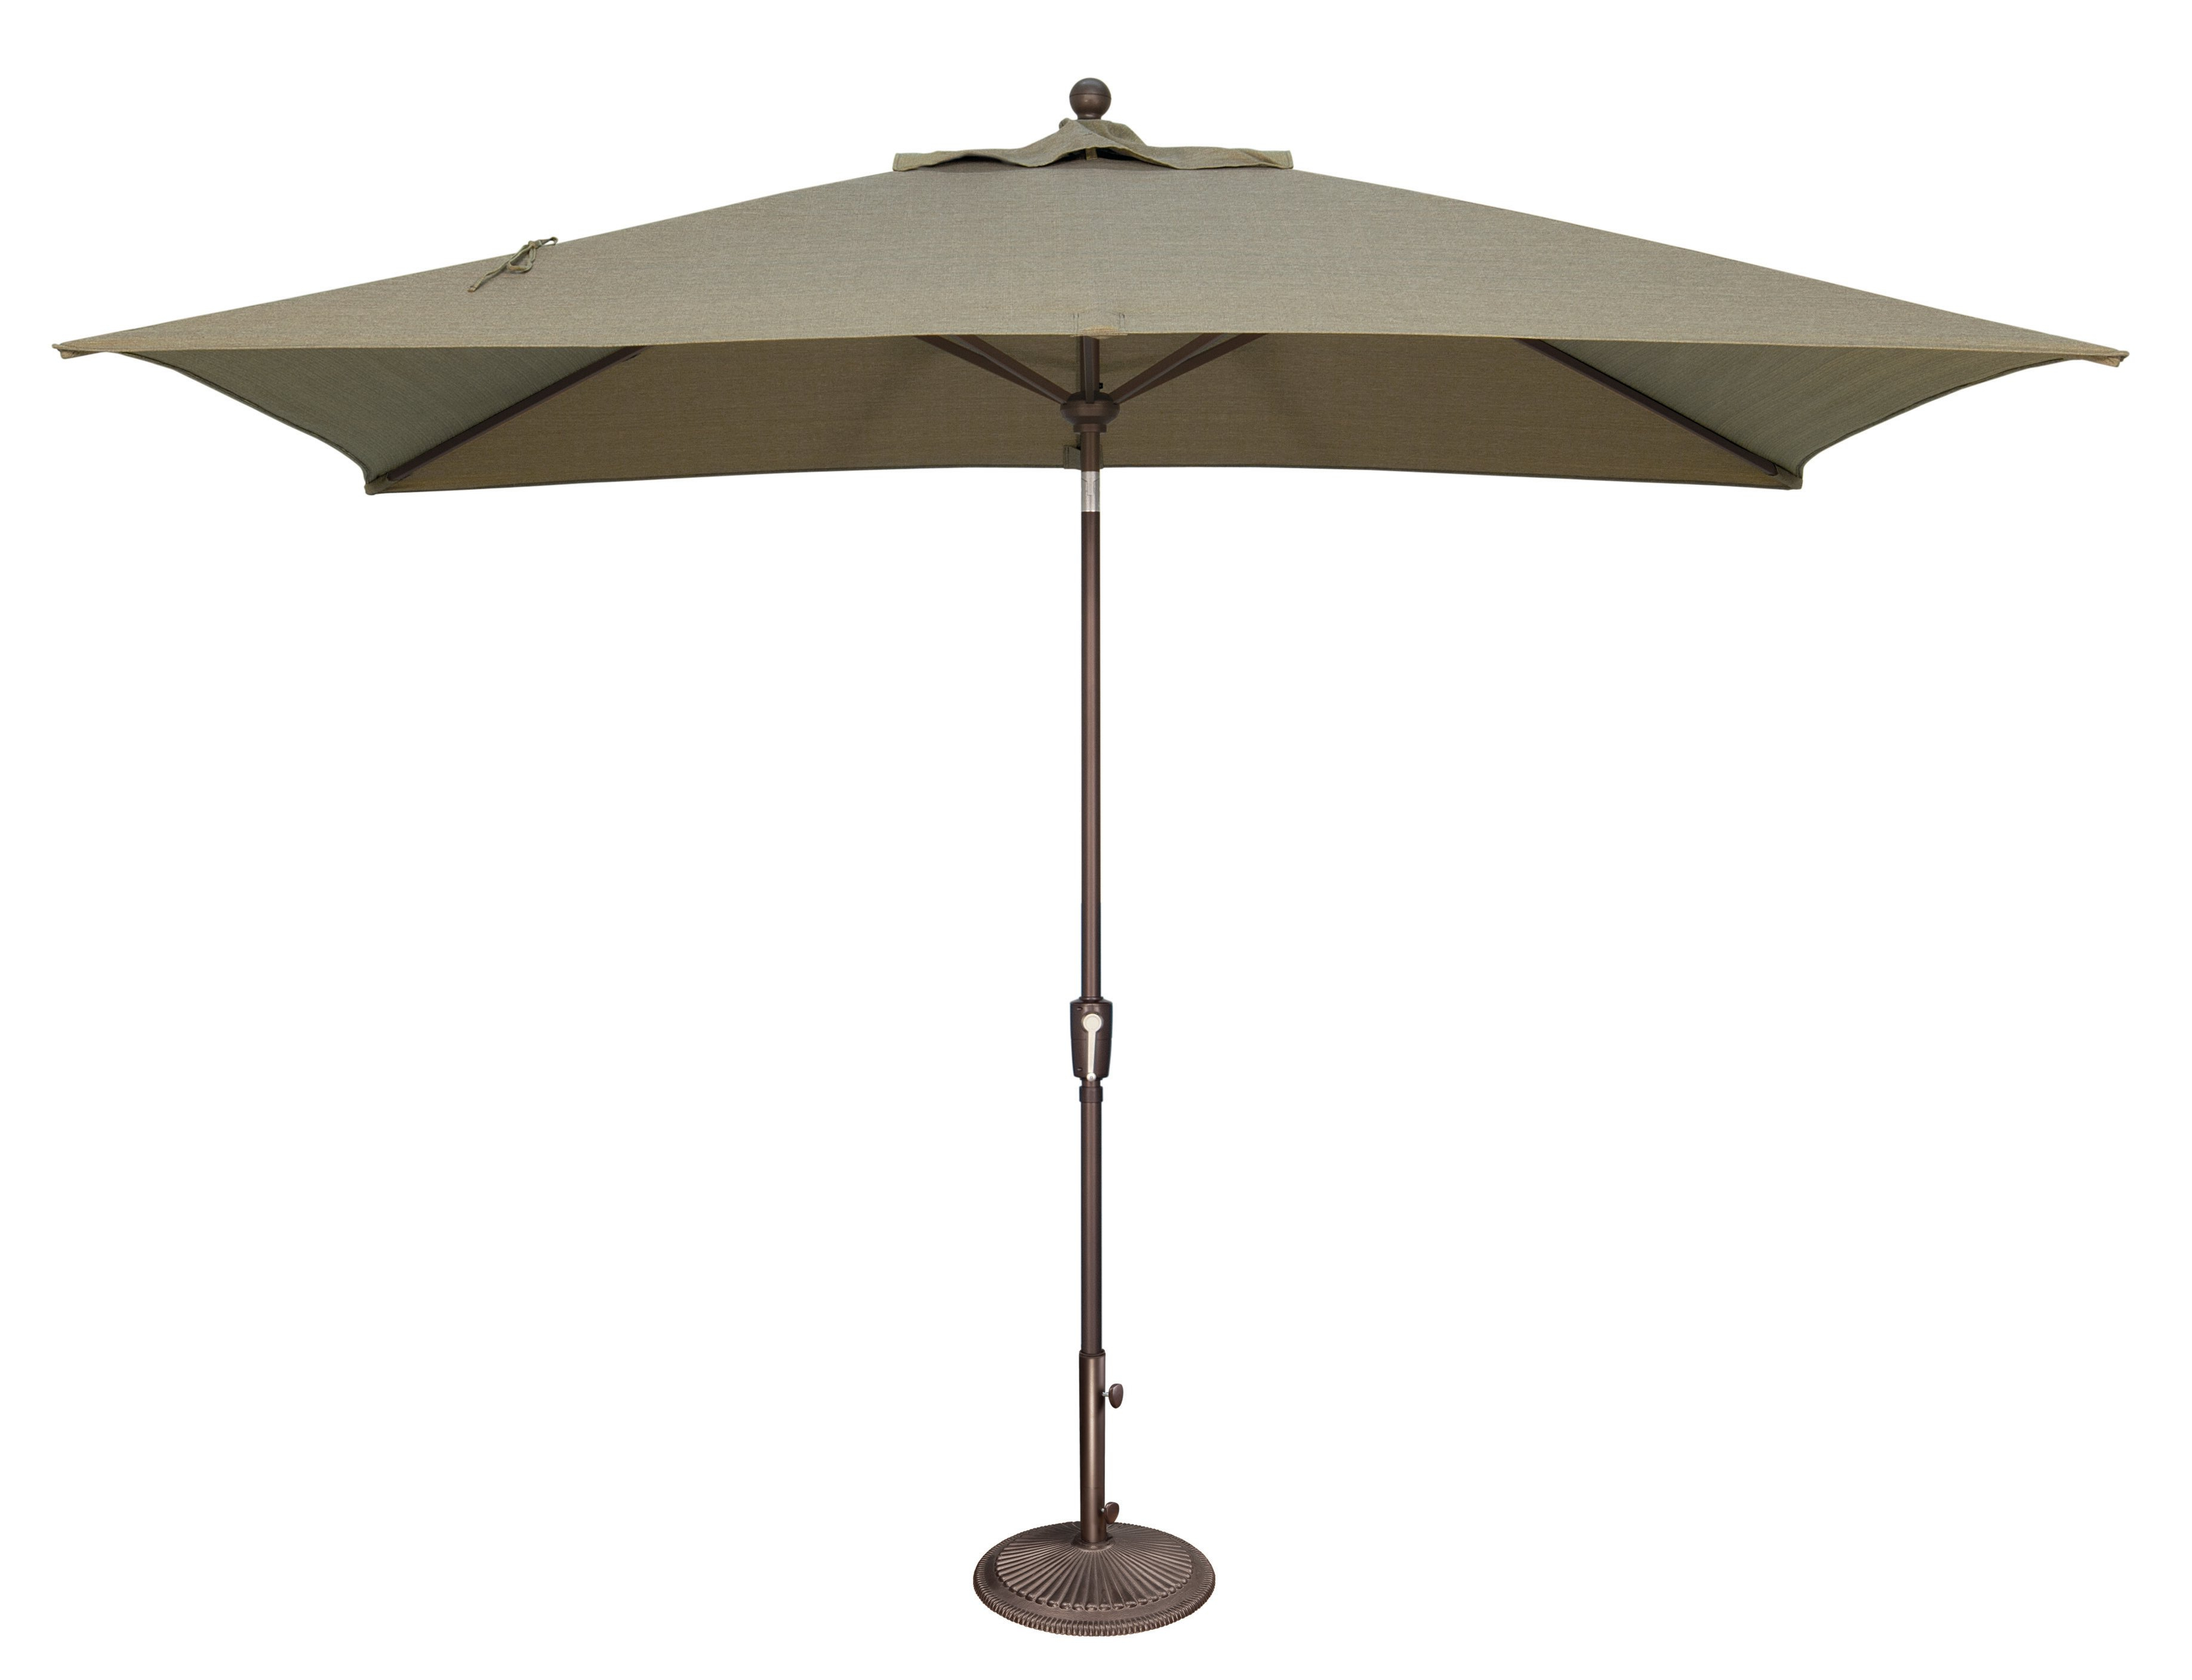 Mucci Madilyn Market Sunbrella Umbrellas Intended For 2020 Launceston 10' X (View 8 of 20)